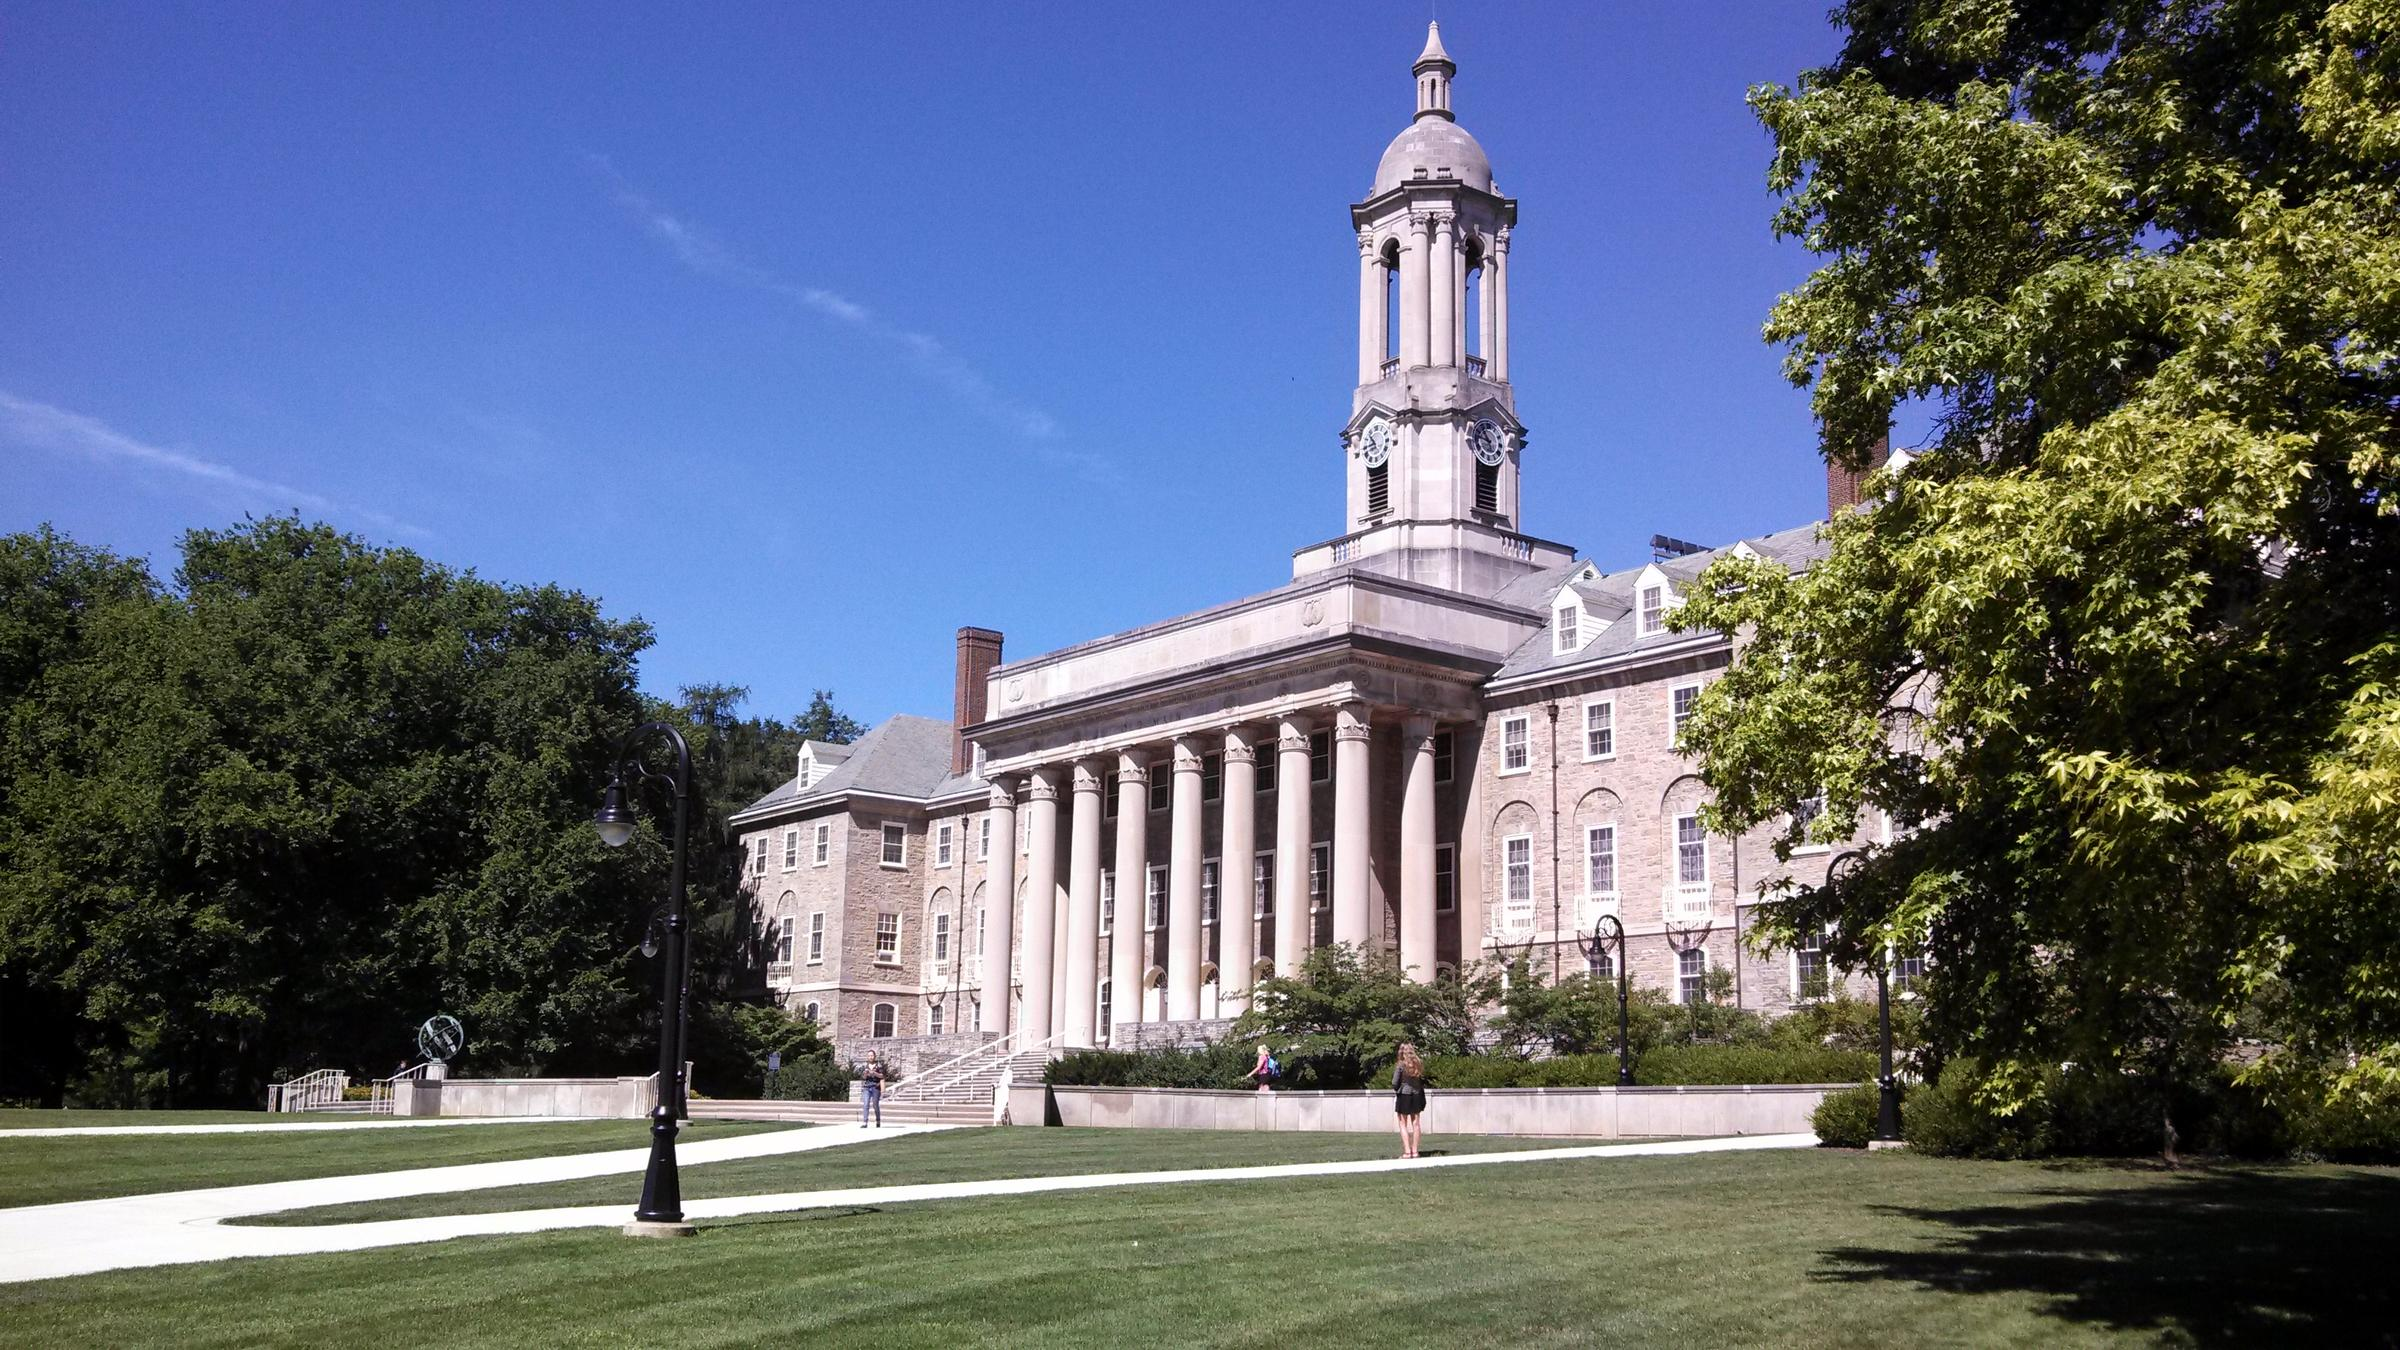 Penn State To Receive State Funding After General Assembly Ends Impasse